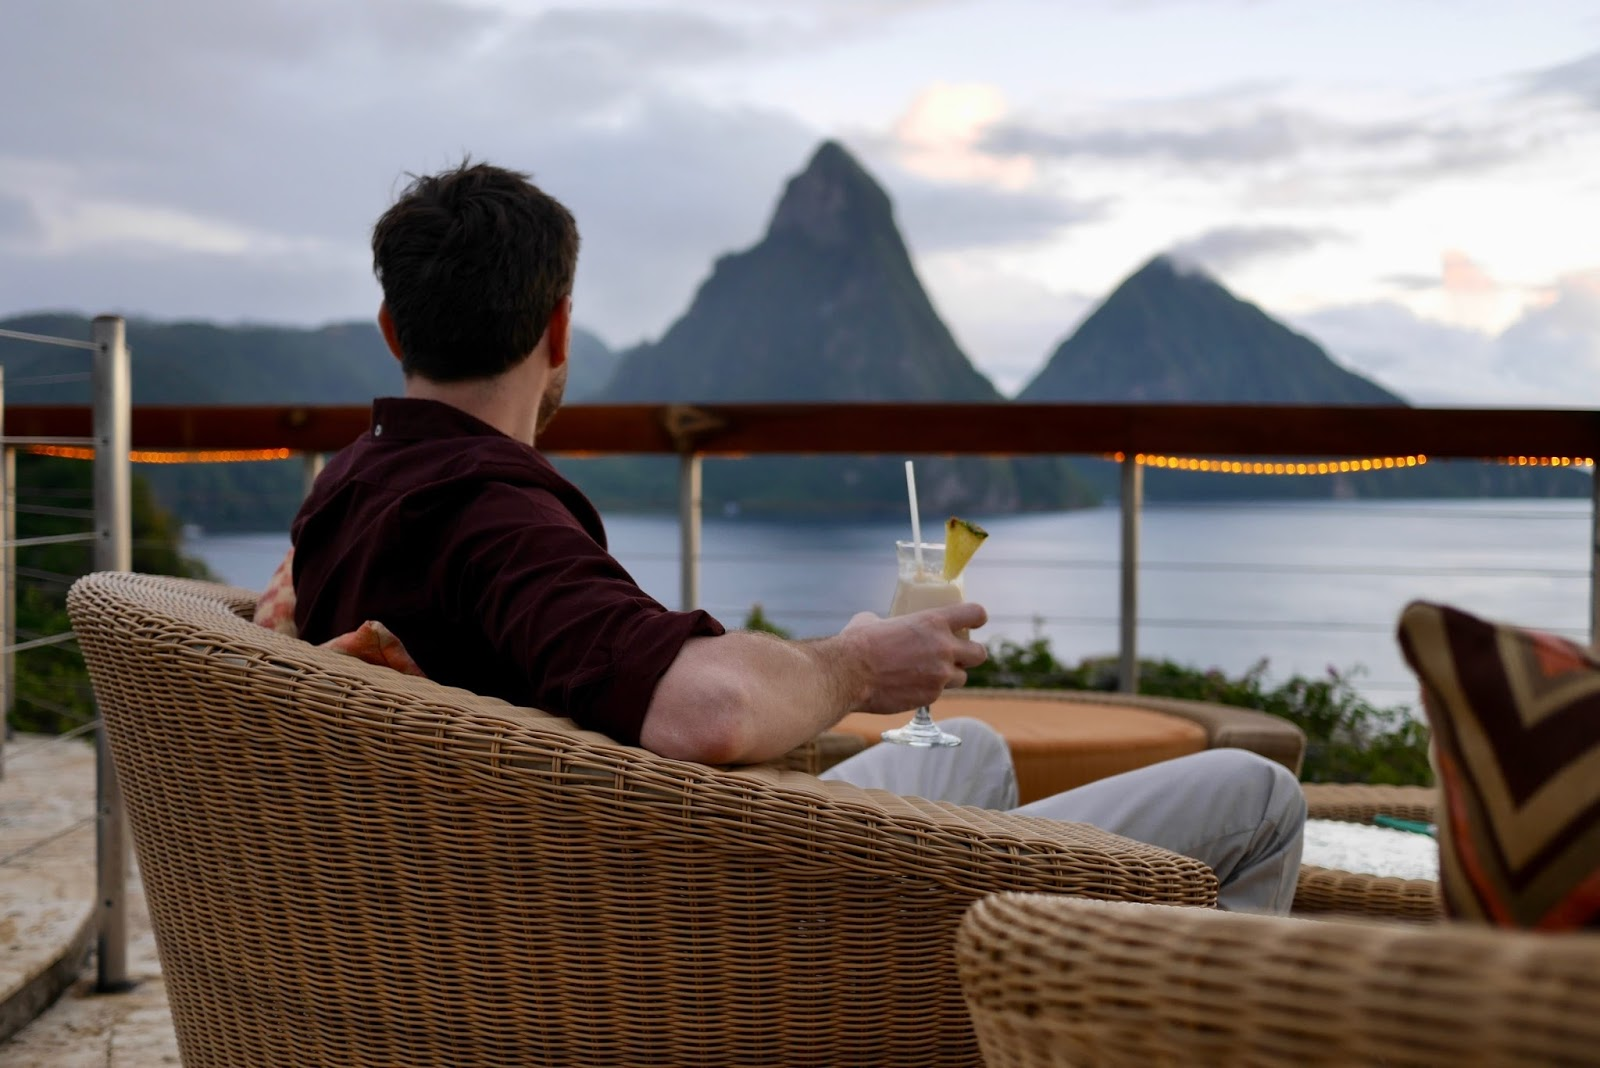 Jade mountain club terrace view, Soufrière, St Lucia by www.CalMcTravels.com